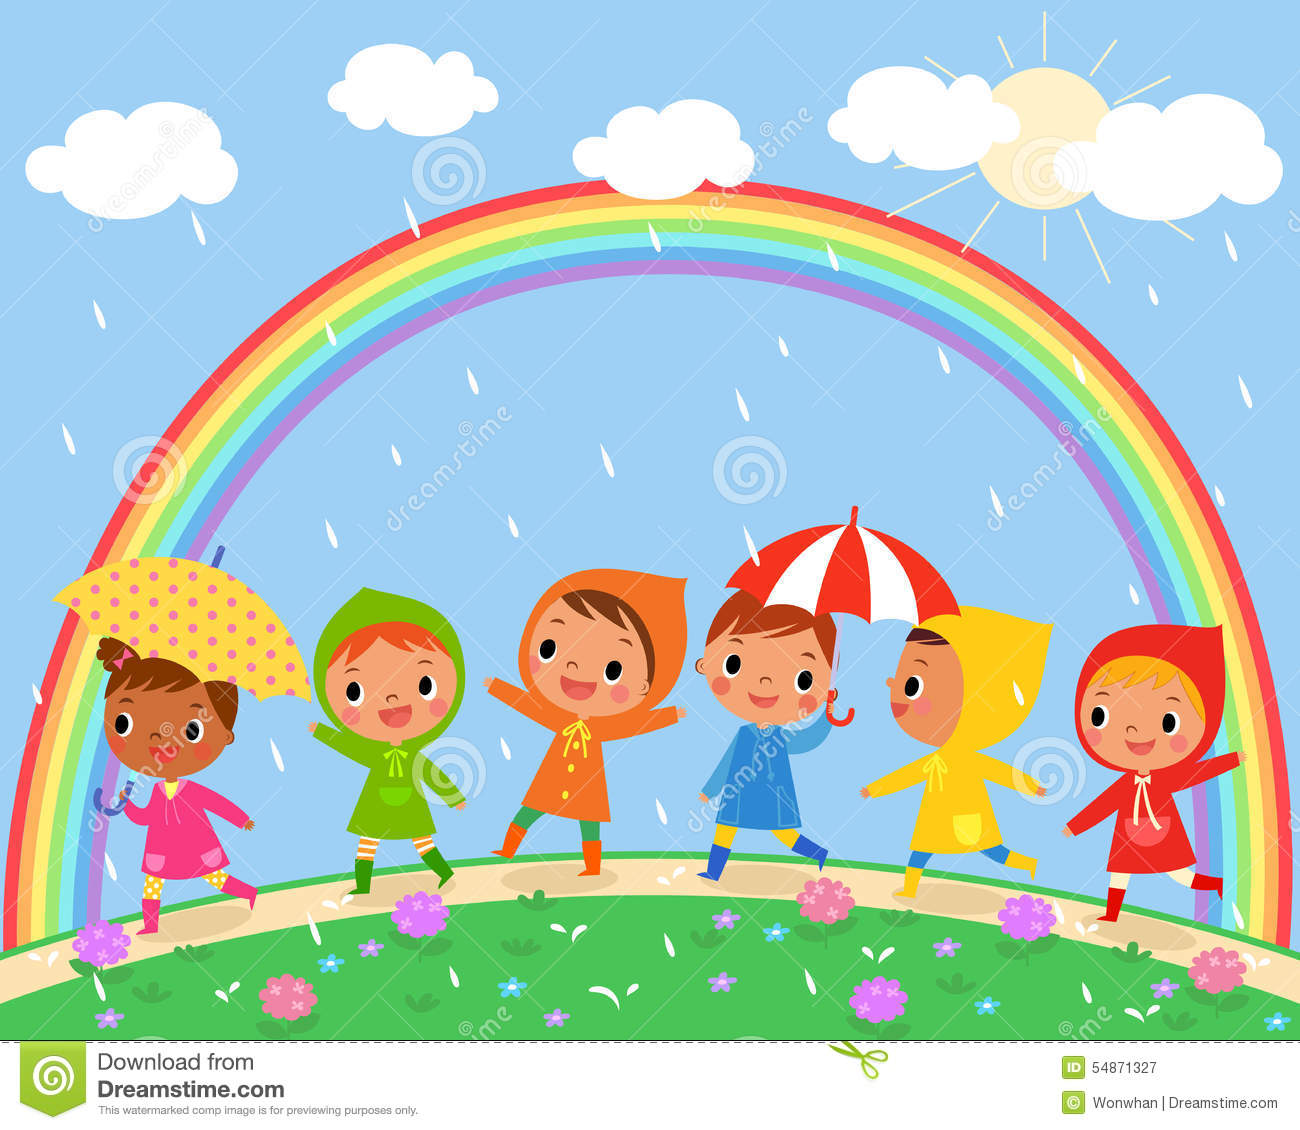 Rainy Day Clip Art: Cloudy Day And Raining Clipart